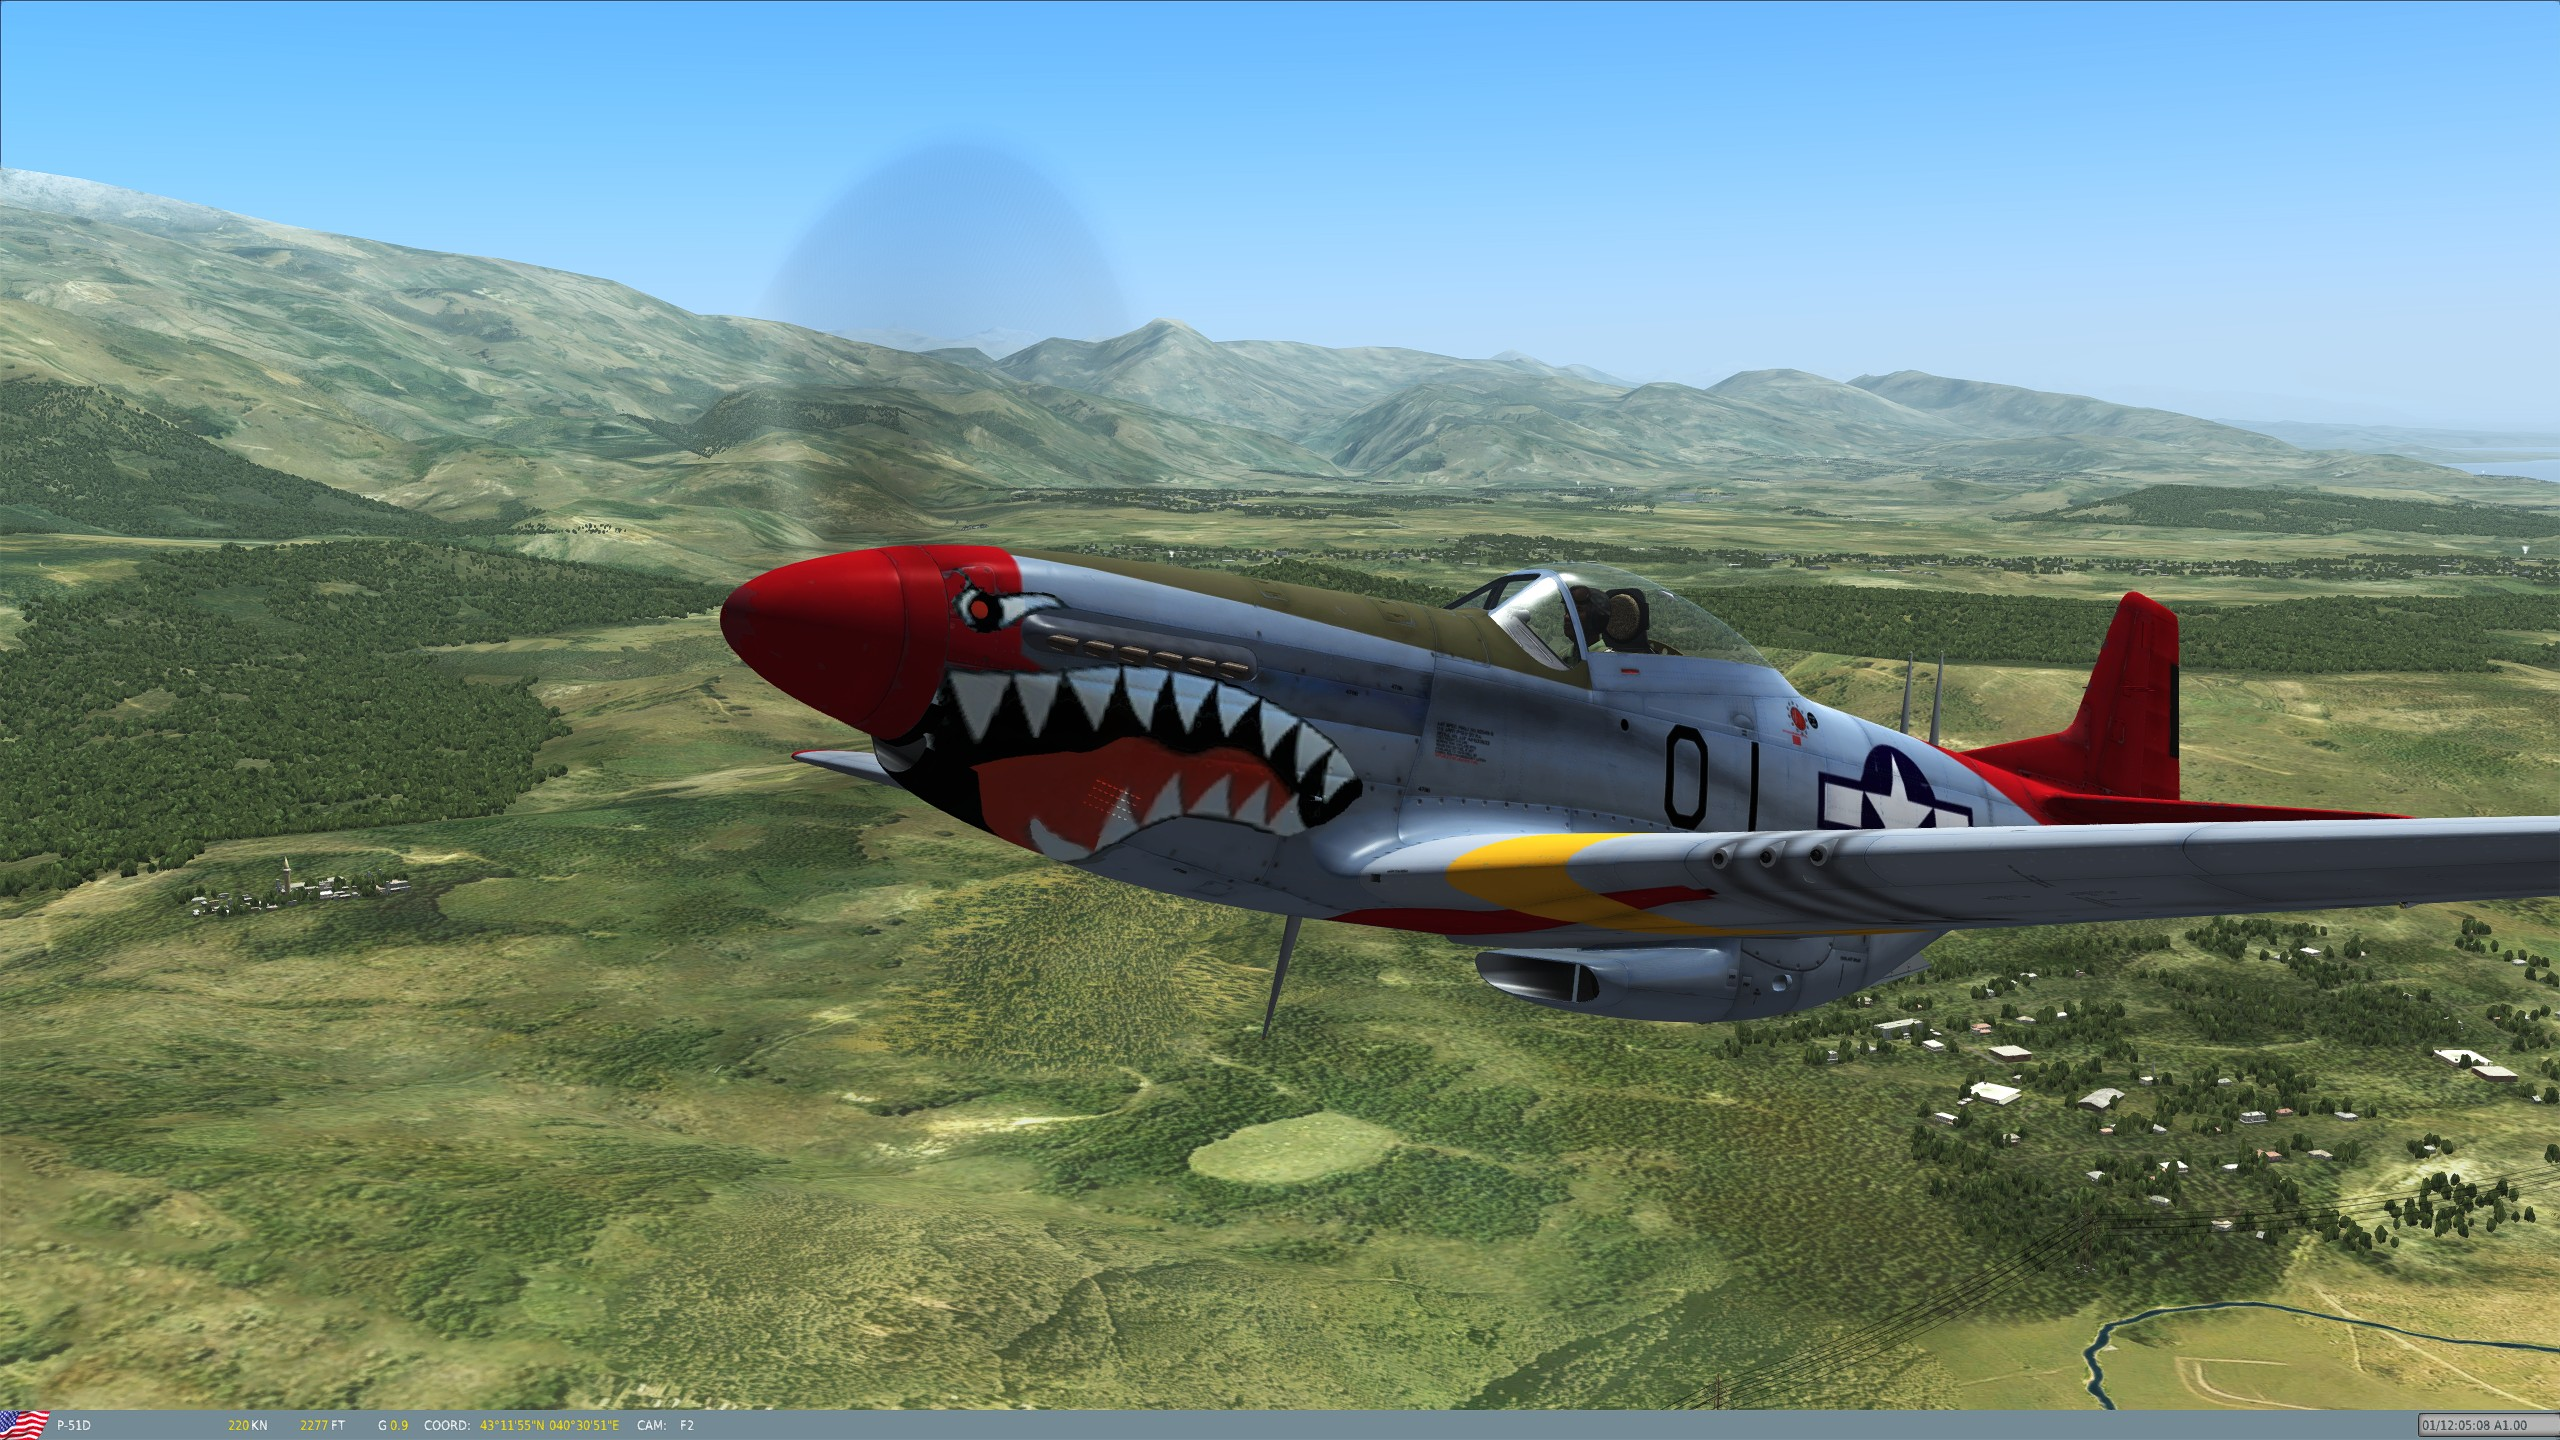 Tf 51d Mustang North American Tf 51d Mustang By Daniel Wales Images On Deviantart Dsc6606 Edit